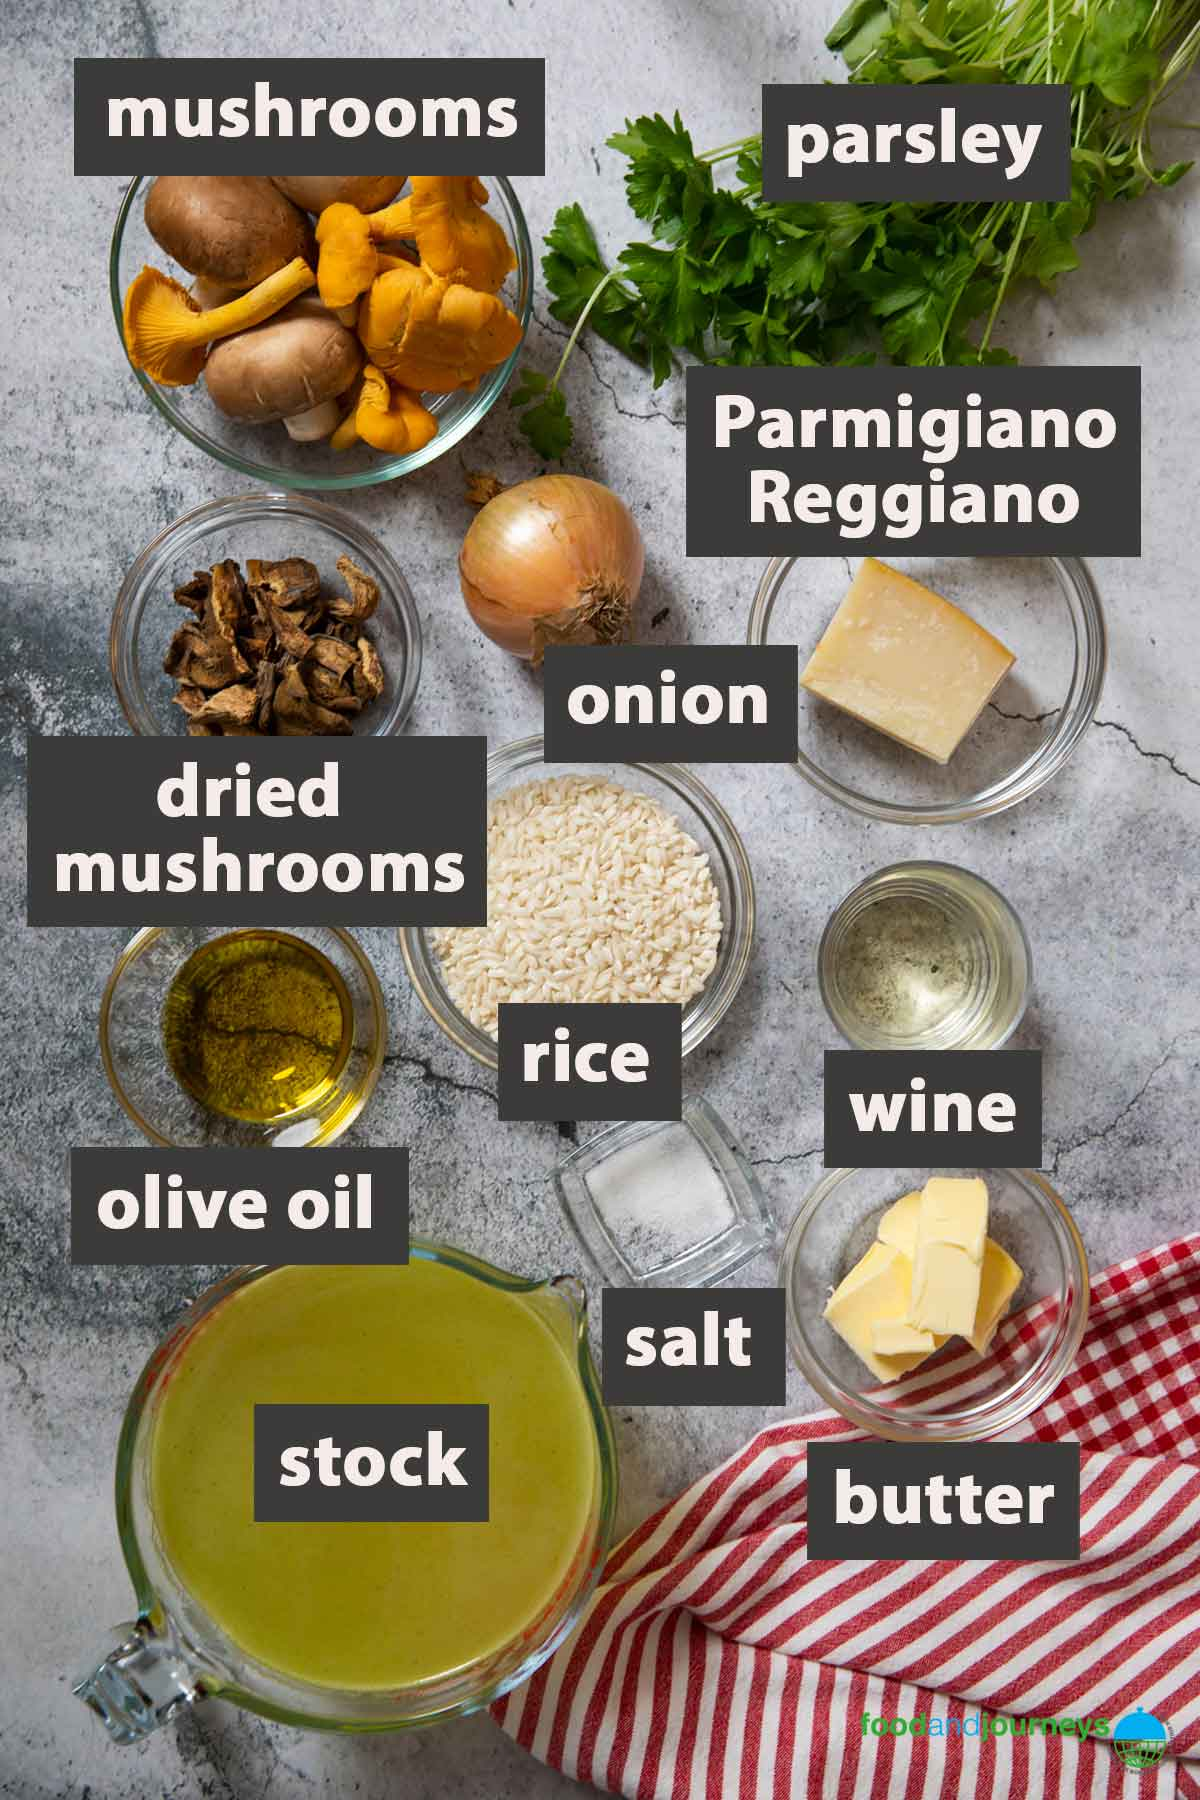 All the ingredients you need to prepare this easy mushroom risotto at home.